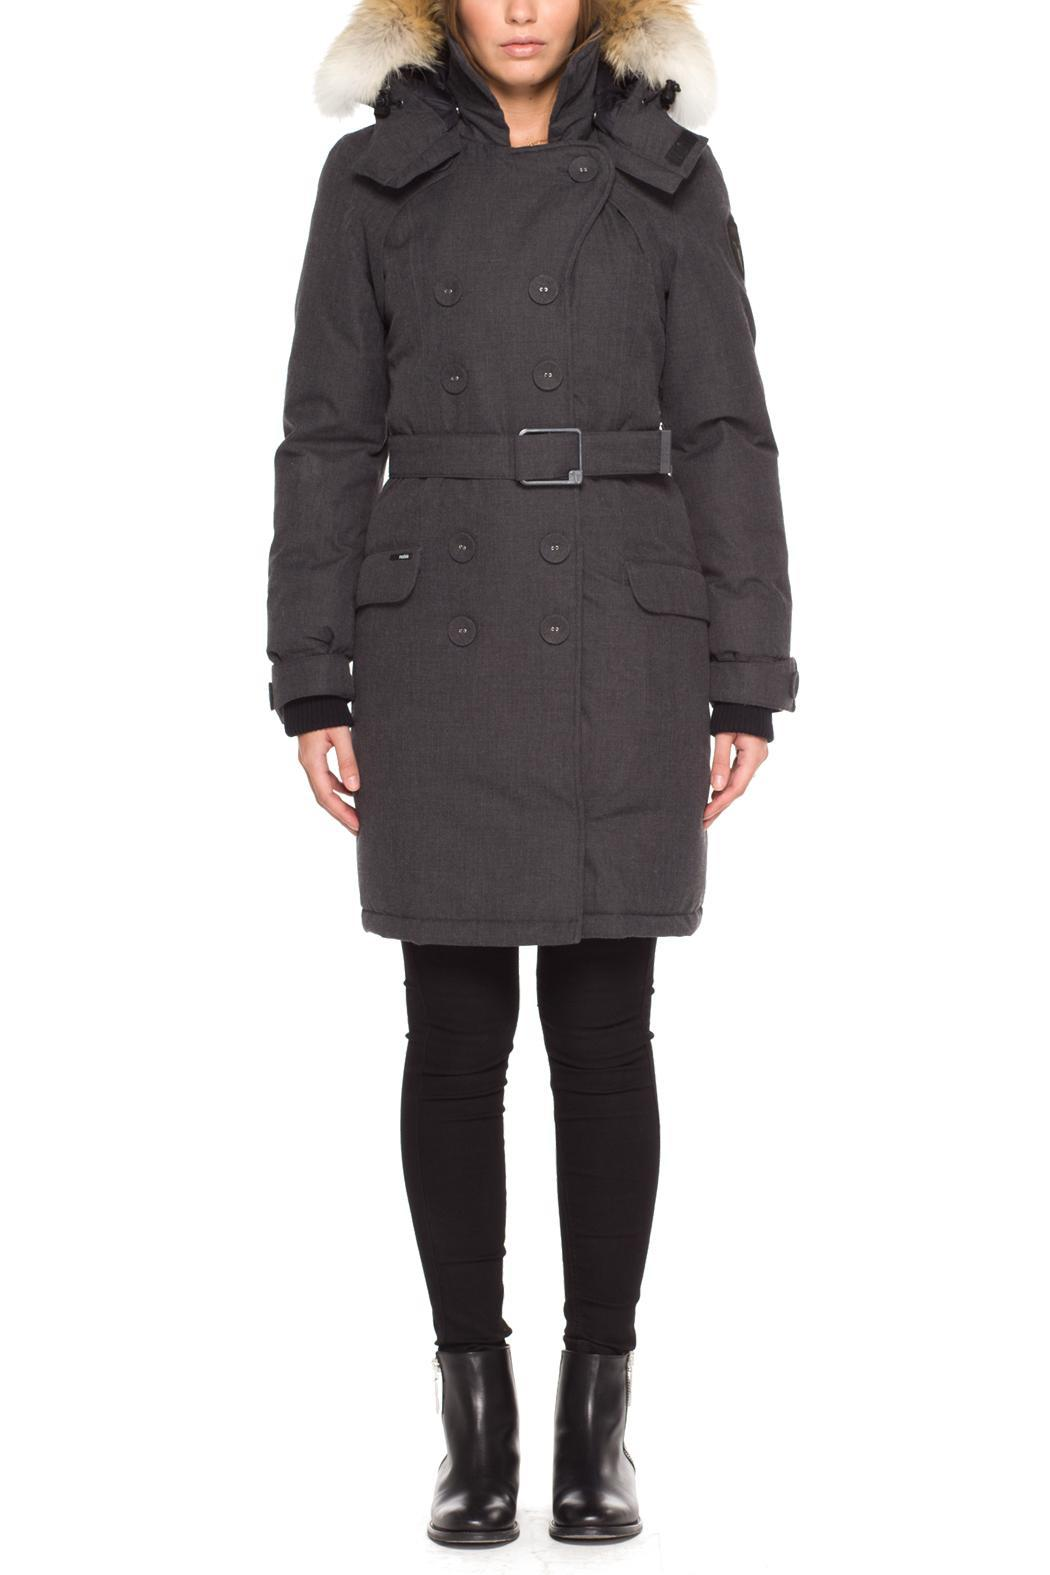 045a4eb7439a4 Nobis Tula Wool Peacoat from Montreal by Boutique TAG — Shoptiques